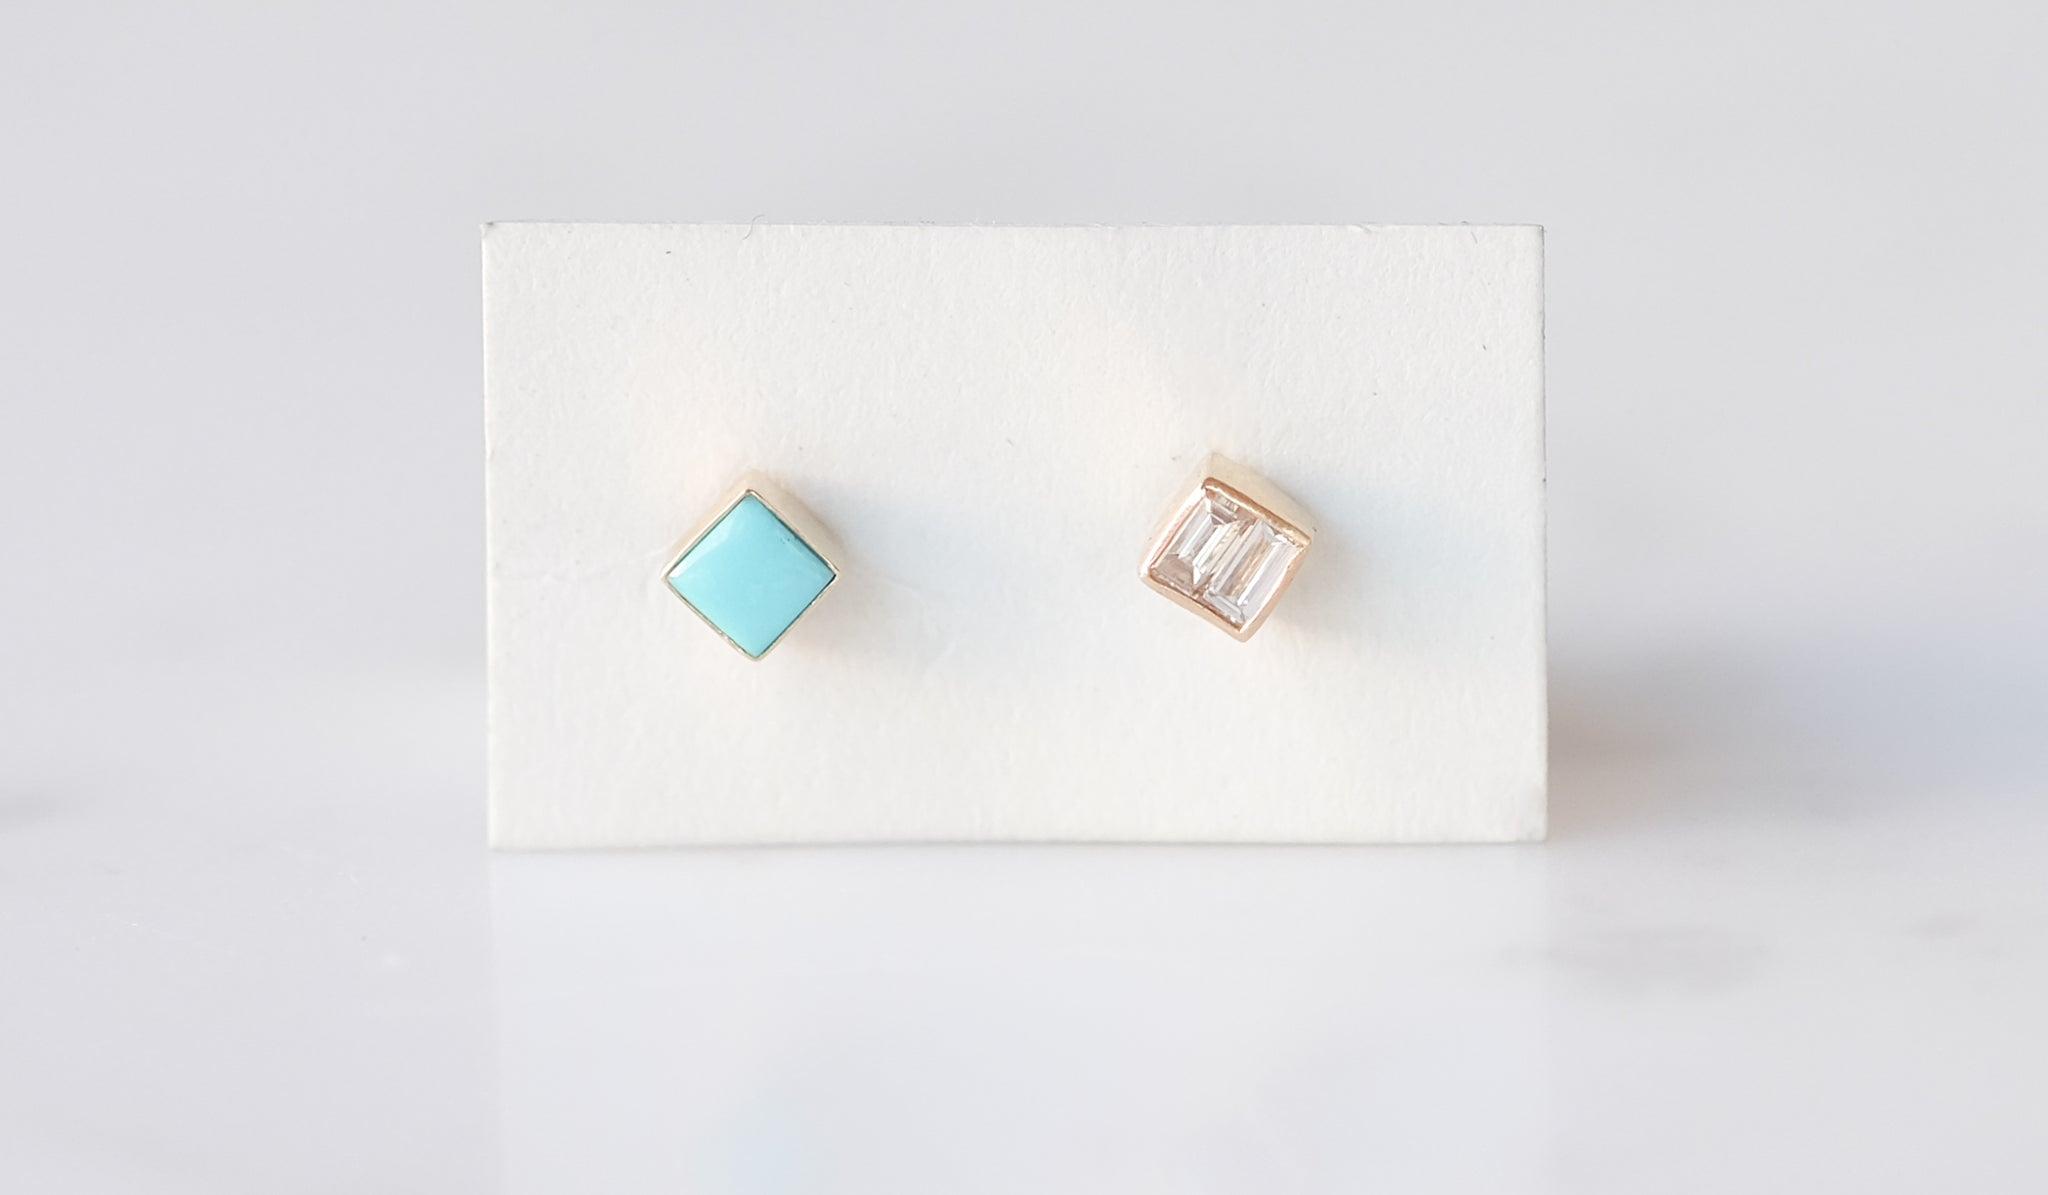 Mociun Square Studs: Turquoise And Diamond, Jewelry, Mociun, SPARTAN SHOP